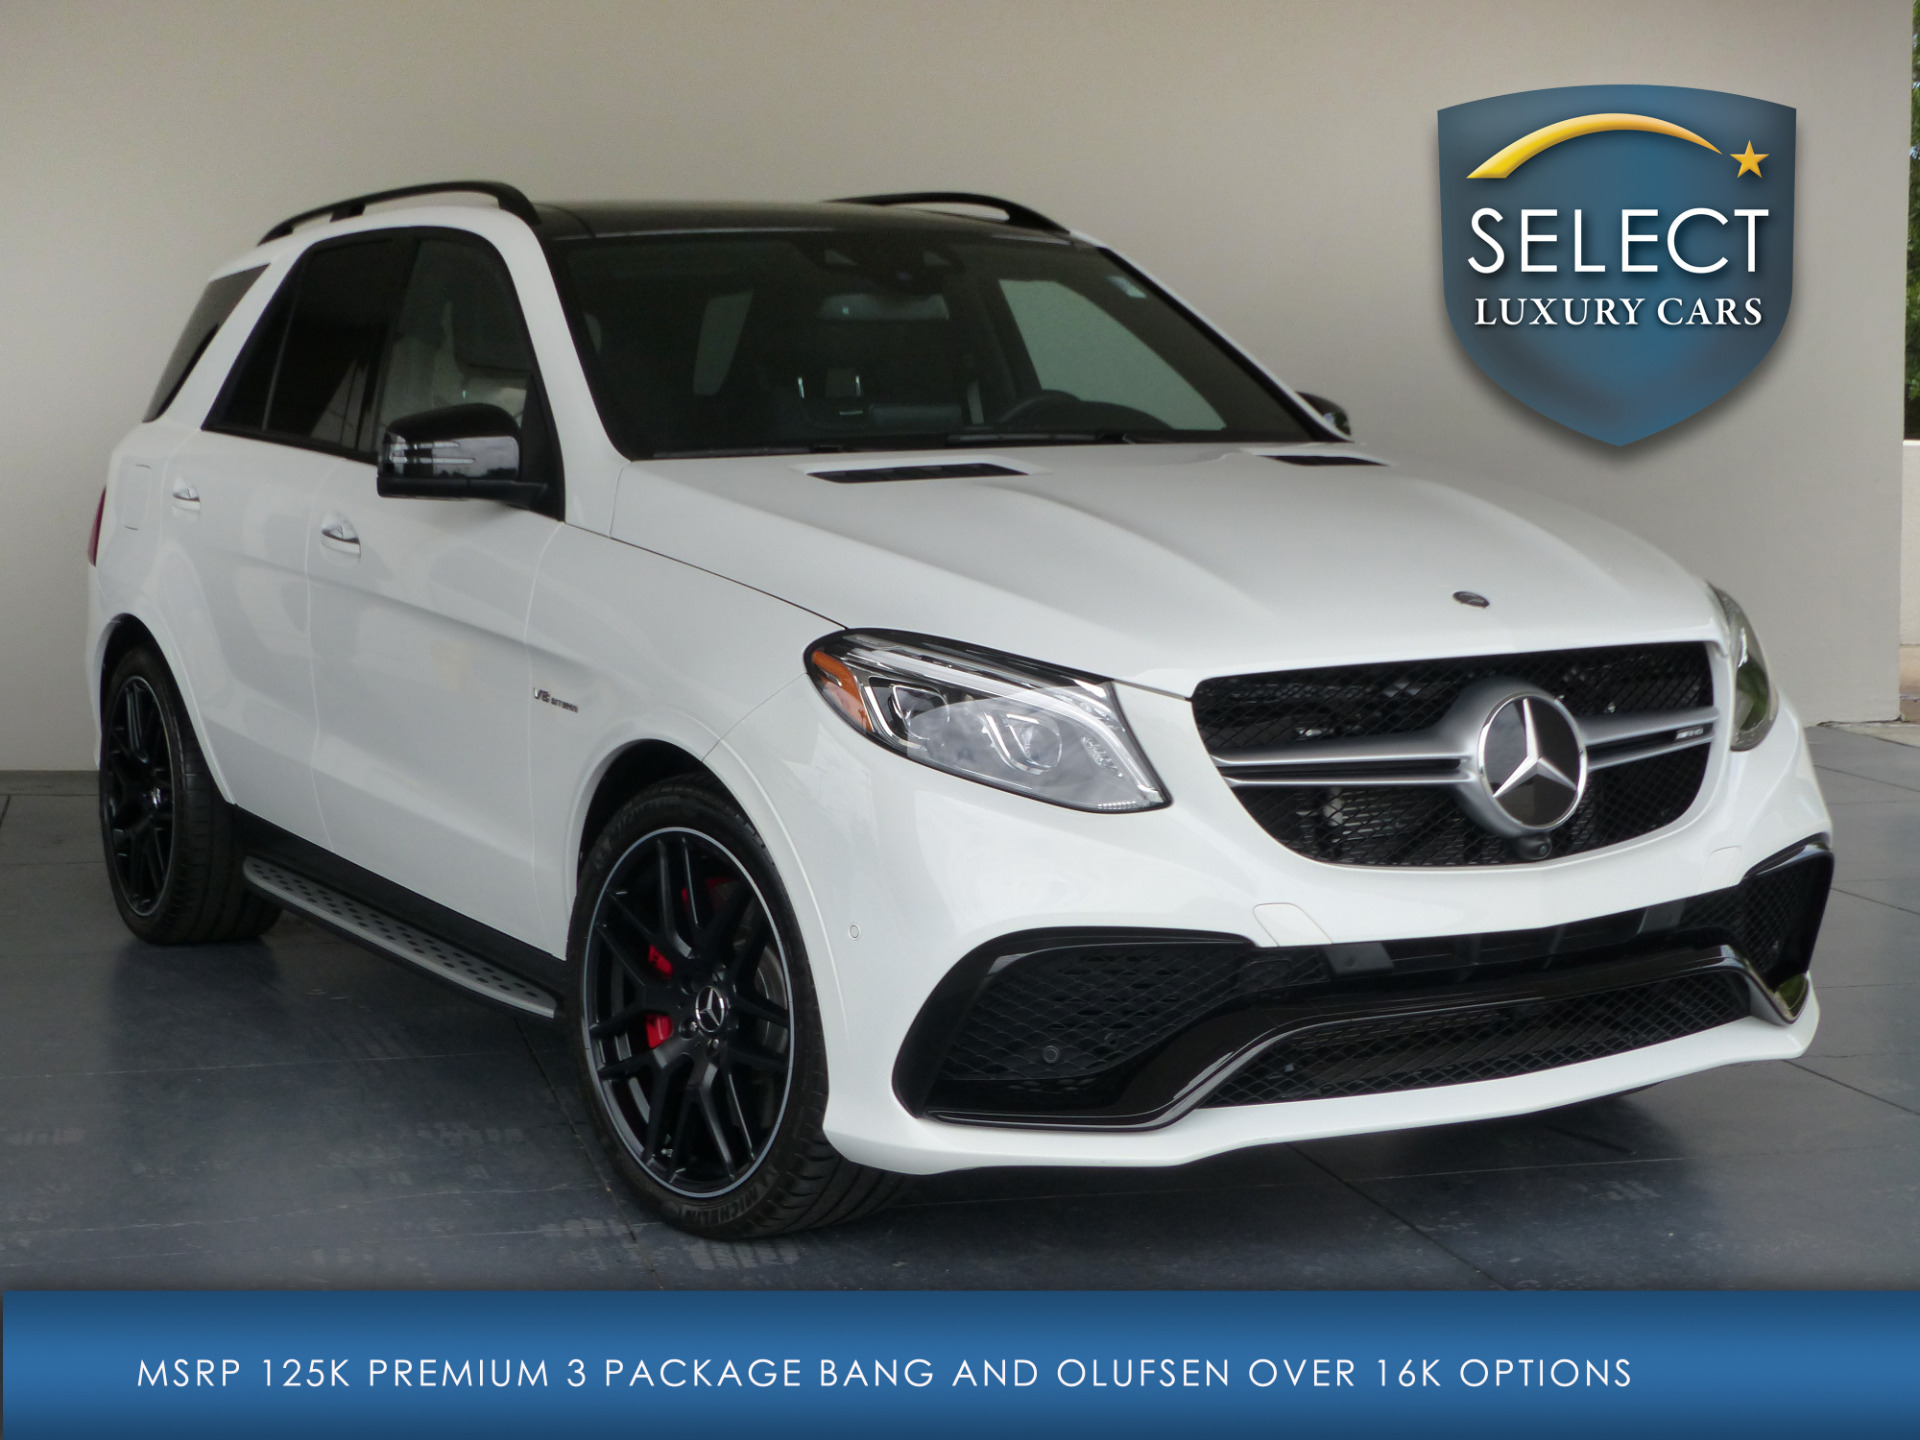 Used 2017 mercedes benz gle 63 s amg marietta ga for 2017 amg gle 63 mercedes benz